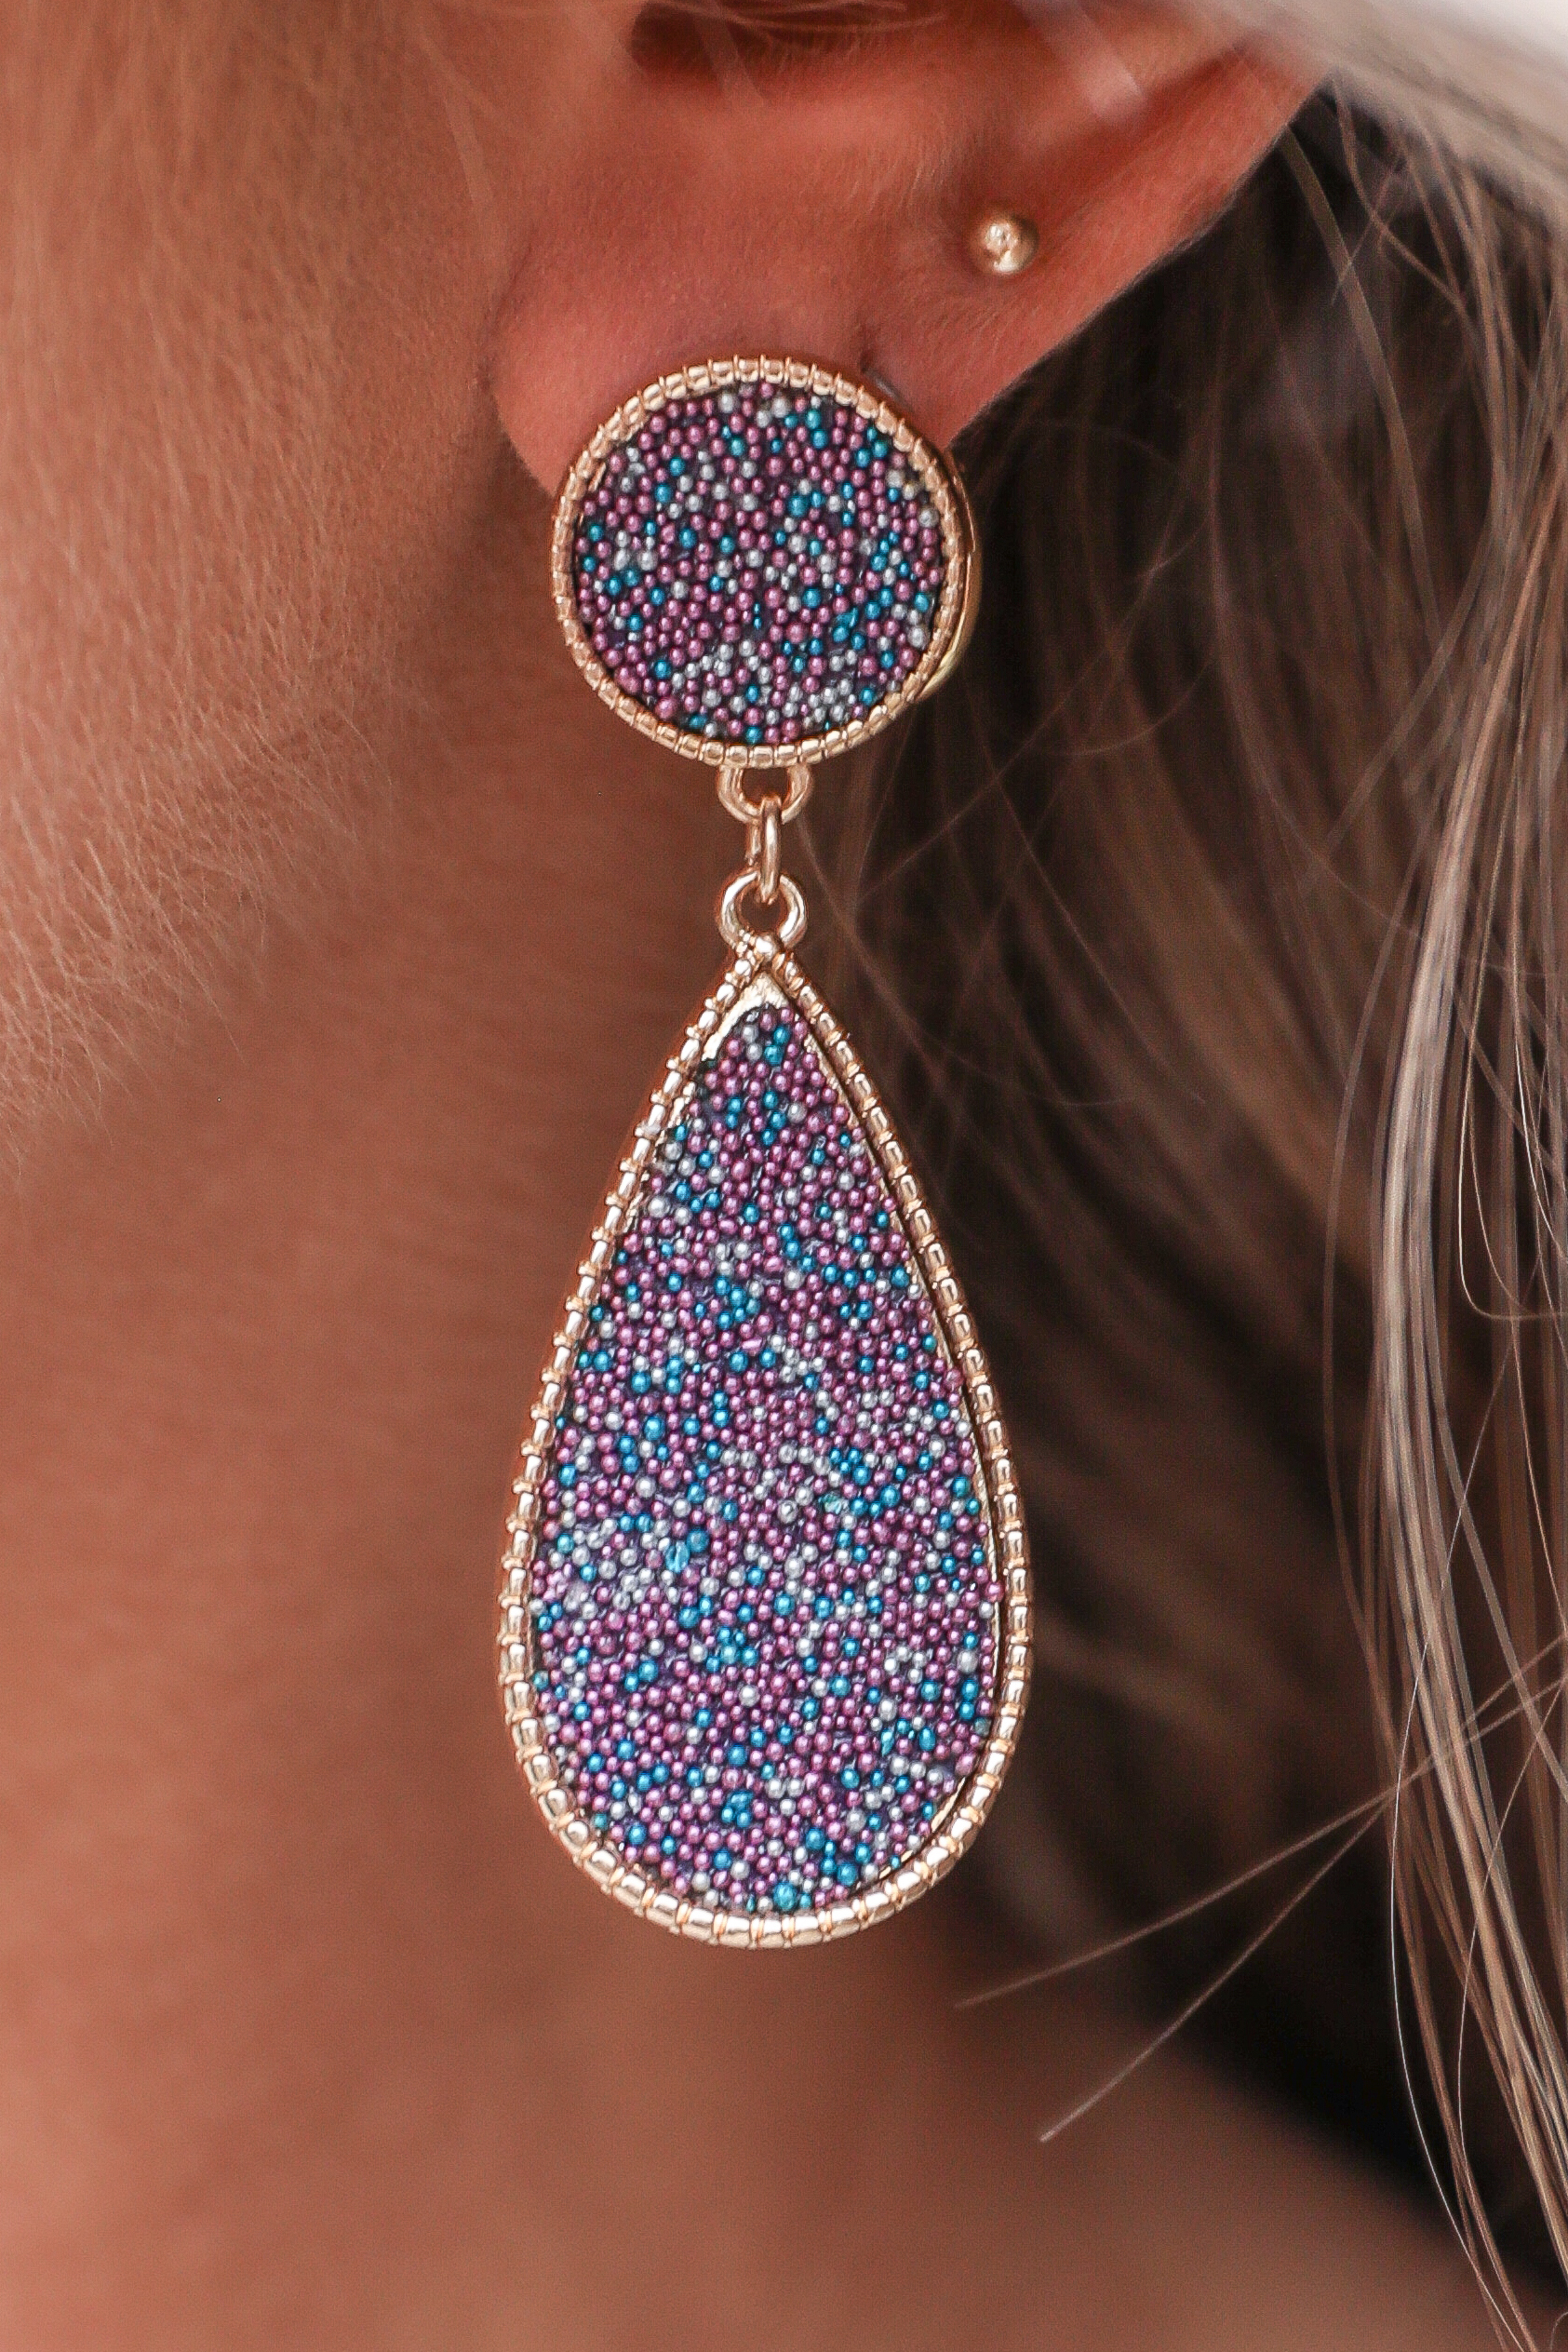 Violet and Gold Tear Drop Earrings with Tiny Bead Detail